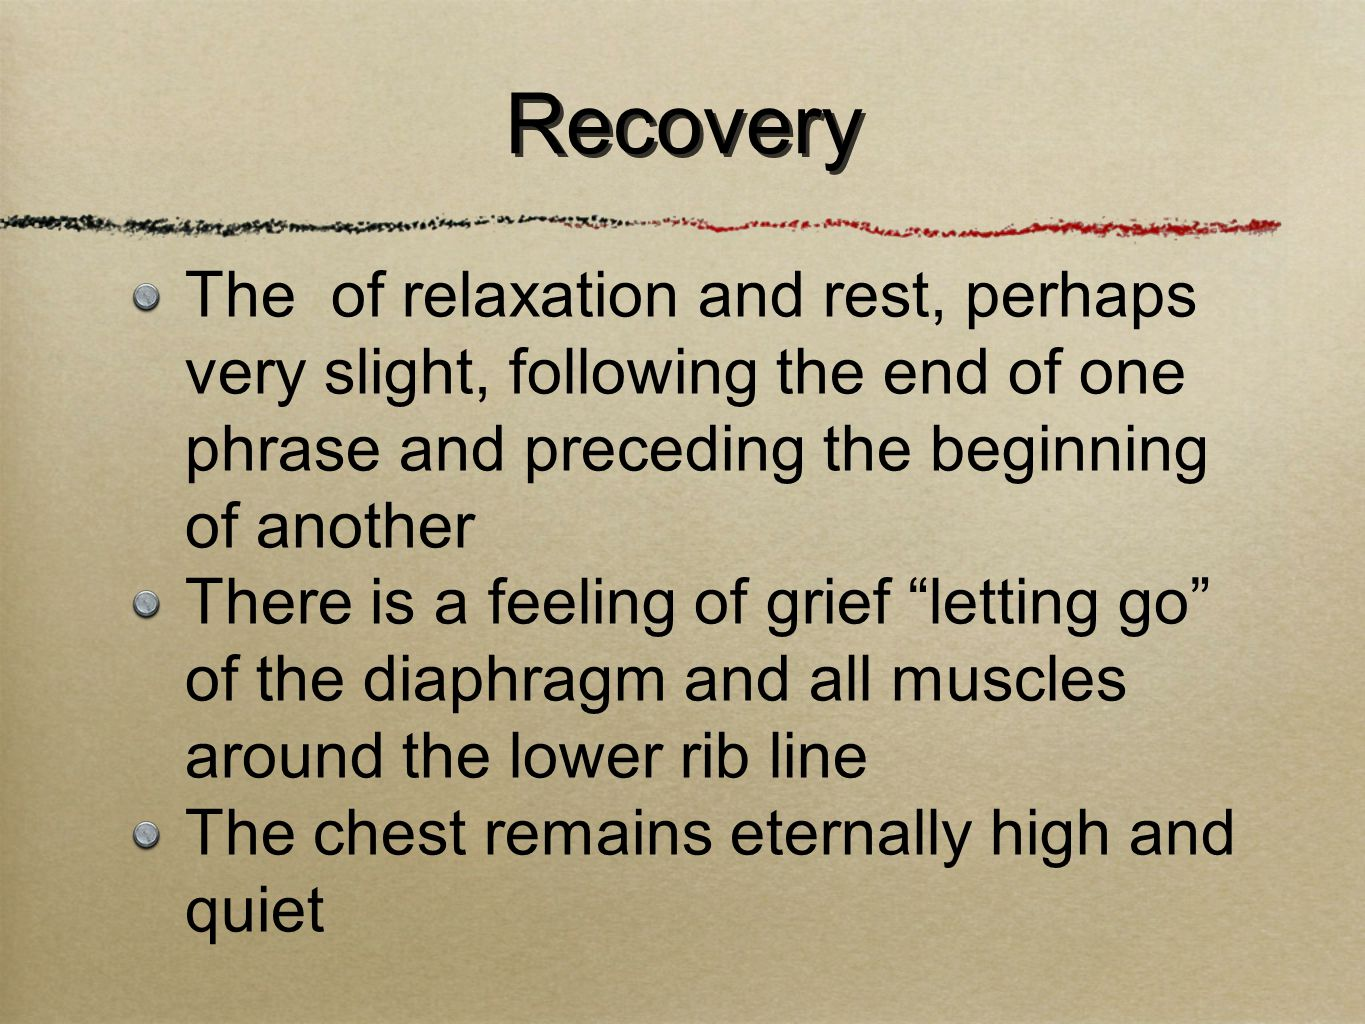 The of relaxation and rest, perhaps very slight, following the end of one phrase and preceding the beginning of another There is a feeling of grief letting go of the diaphragm and all muscles around the lower rib line The chest remains eternally high and quiet Recovery